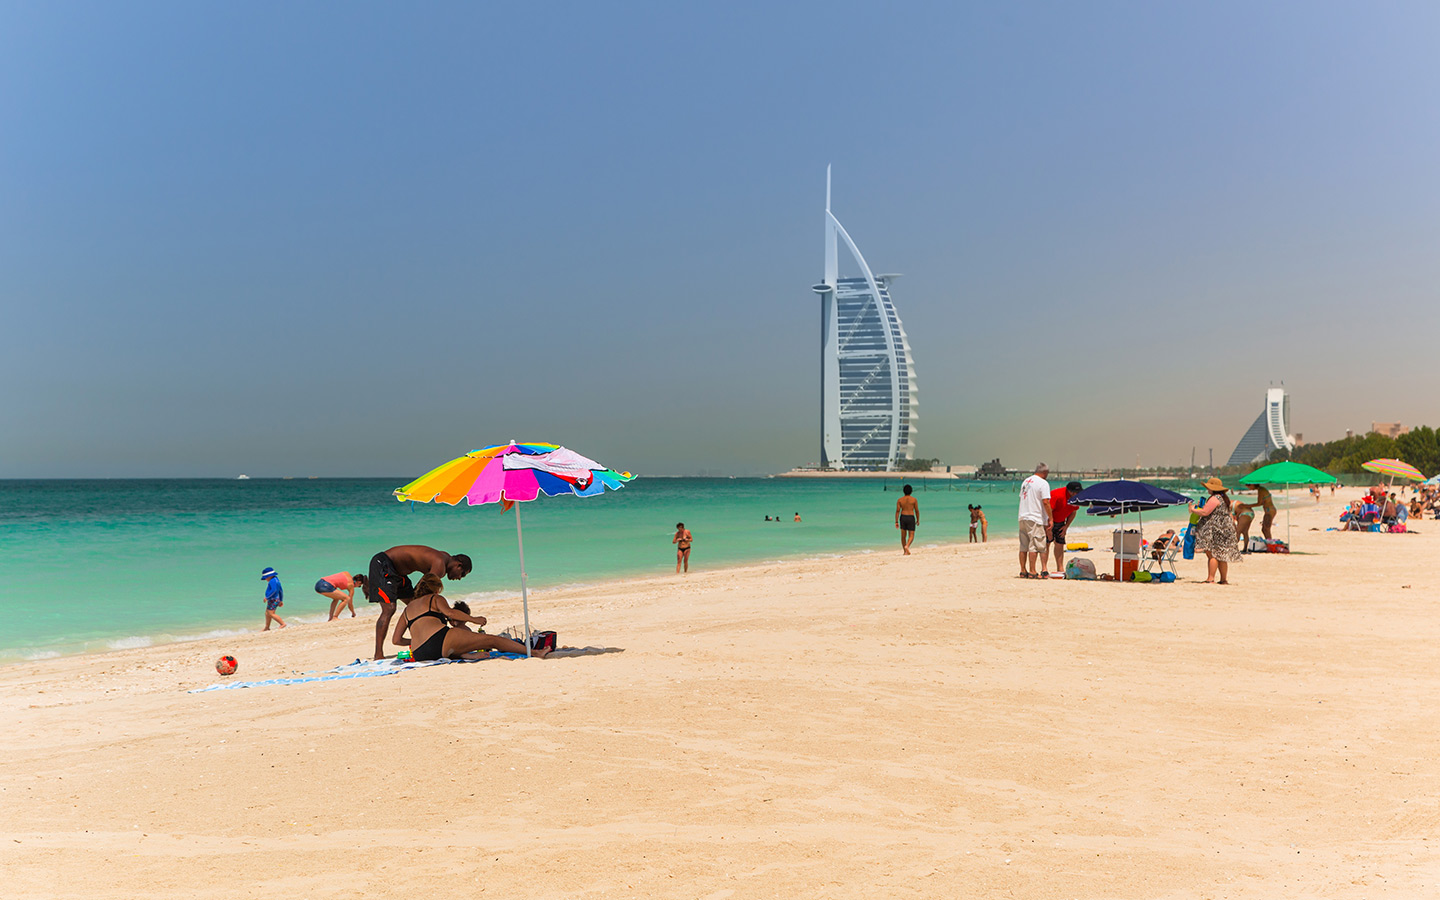 People relaxing at Jumeirah Public Beach